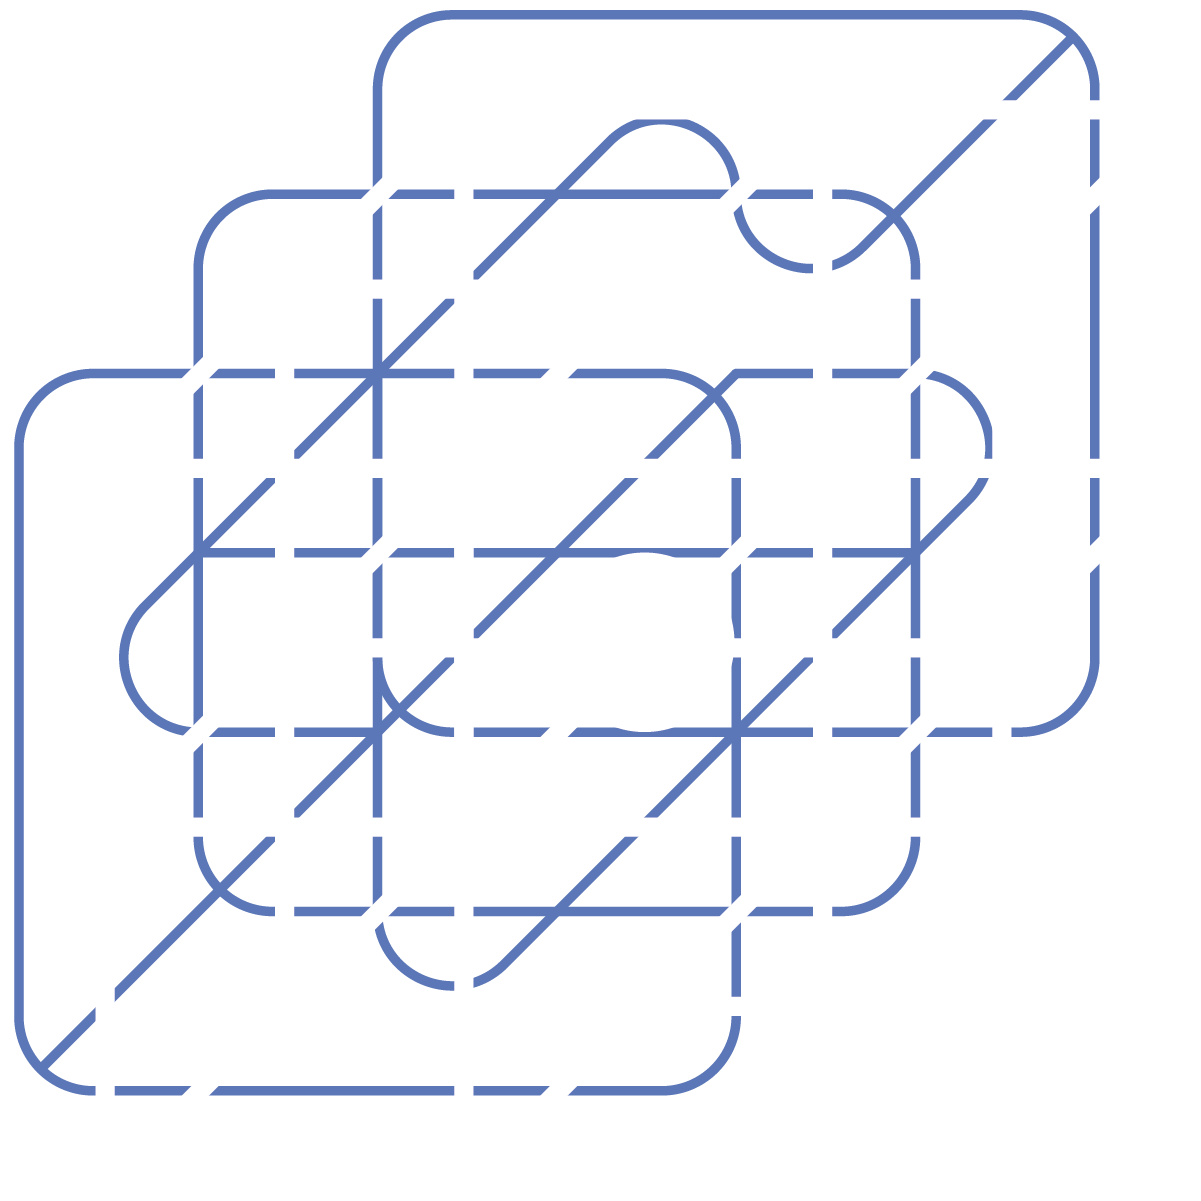 Hypercube with central point